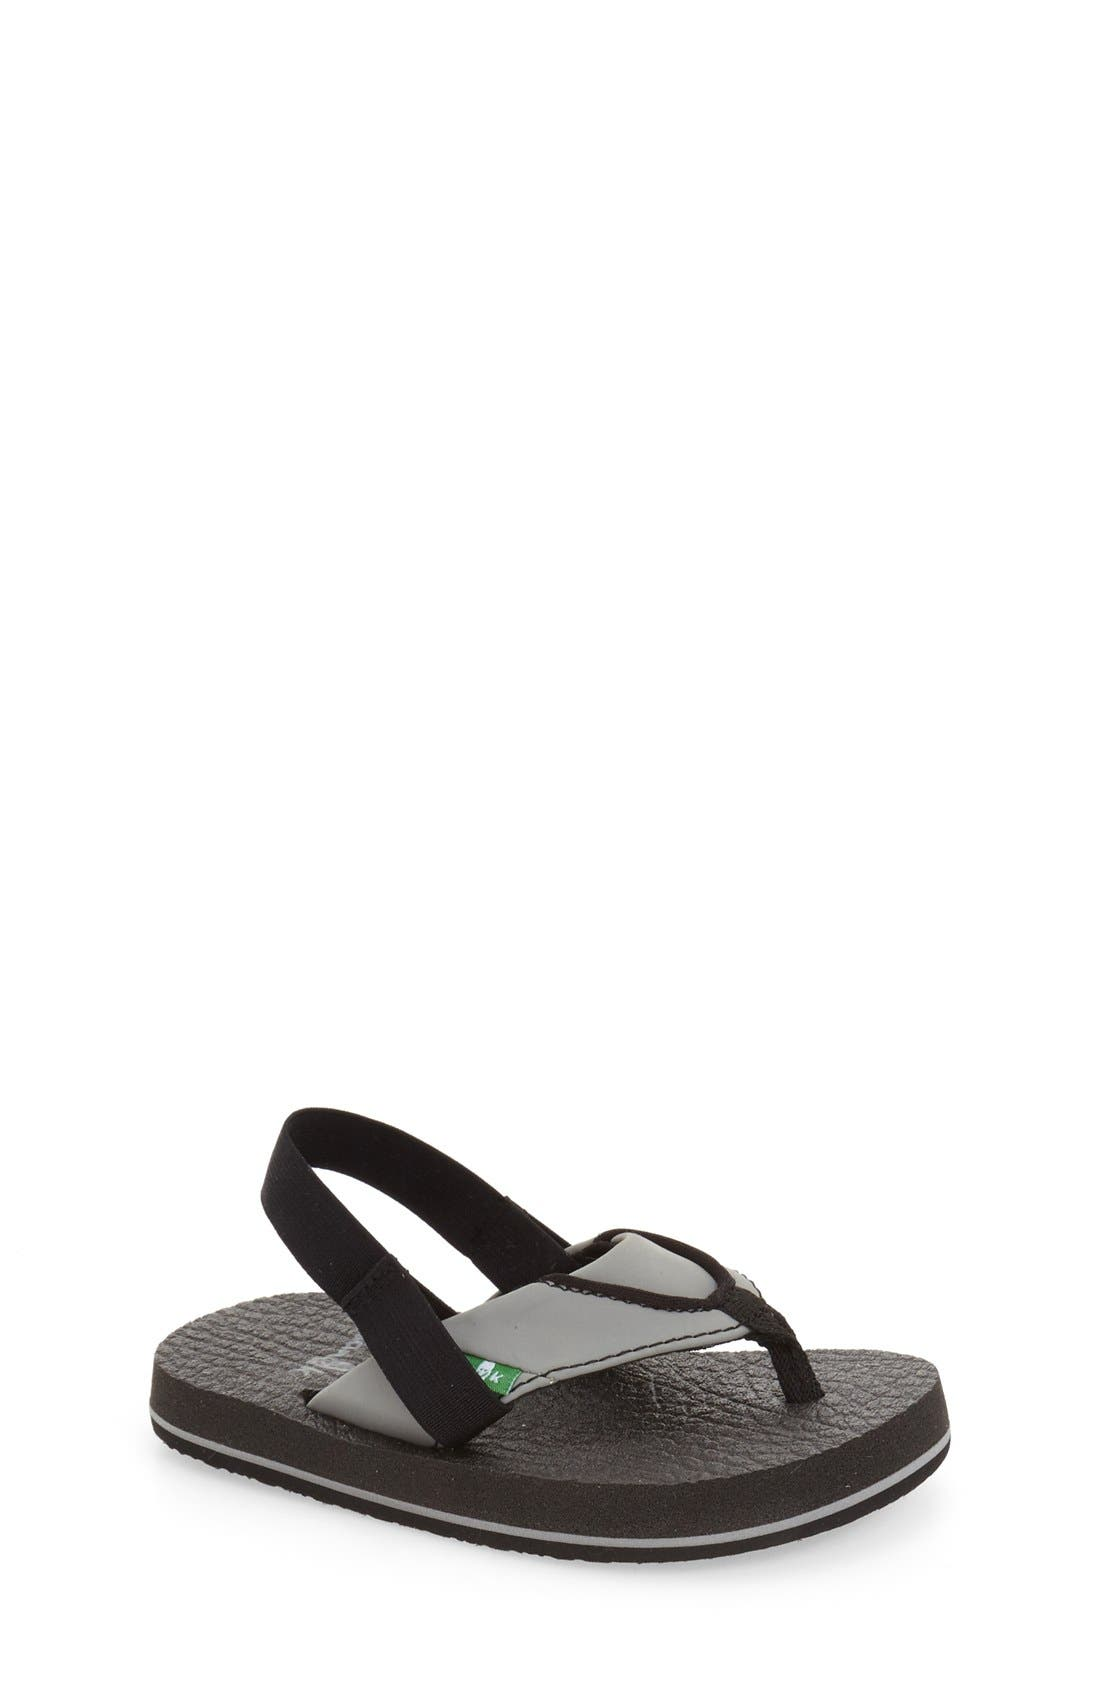 Alternate Image 1 Selected - Sanuk 'Root Beer' Sandal (Toddler, Little Kid & Big Kid)